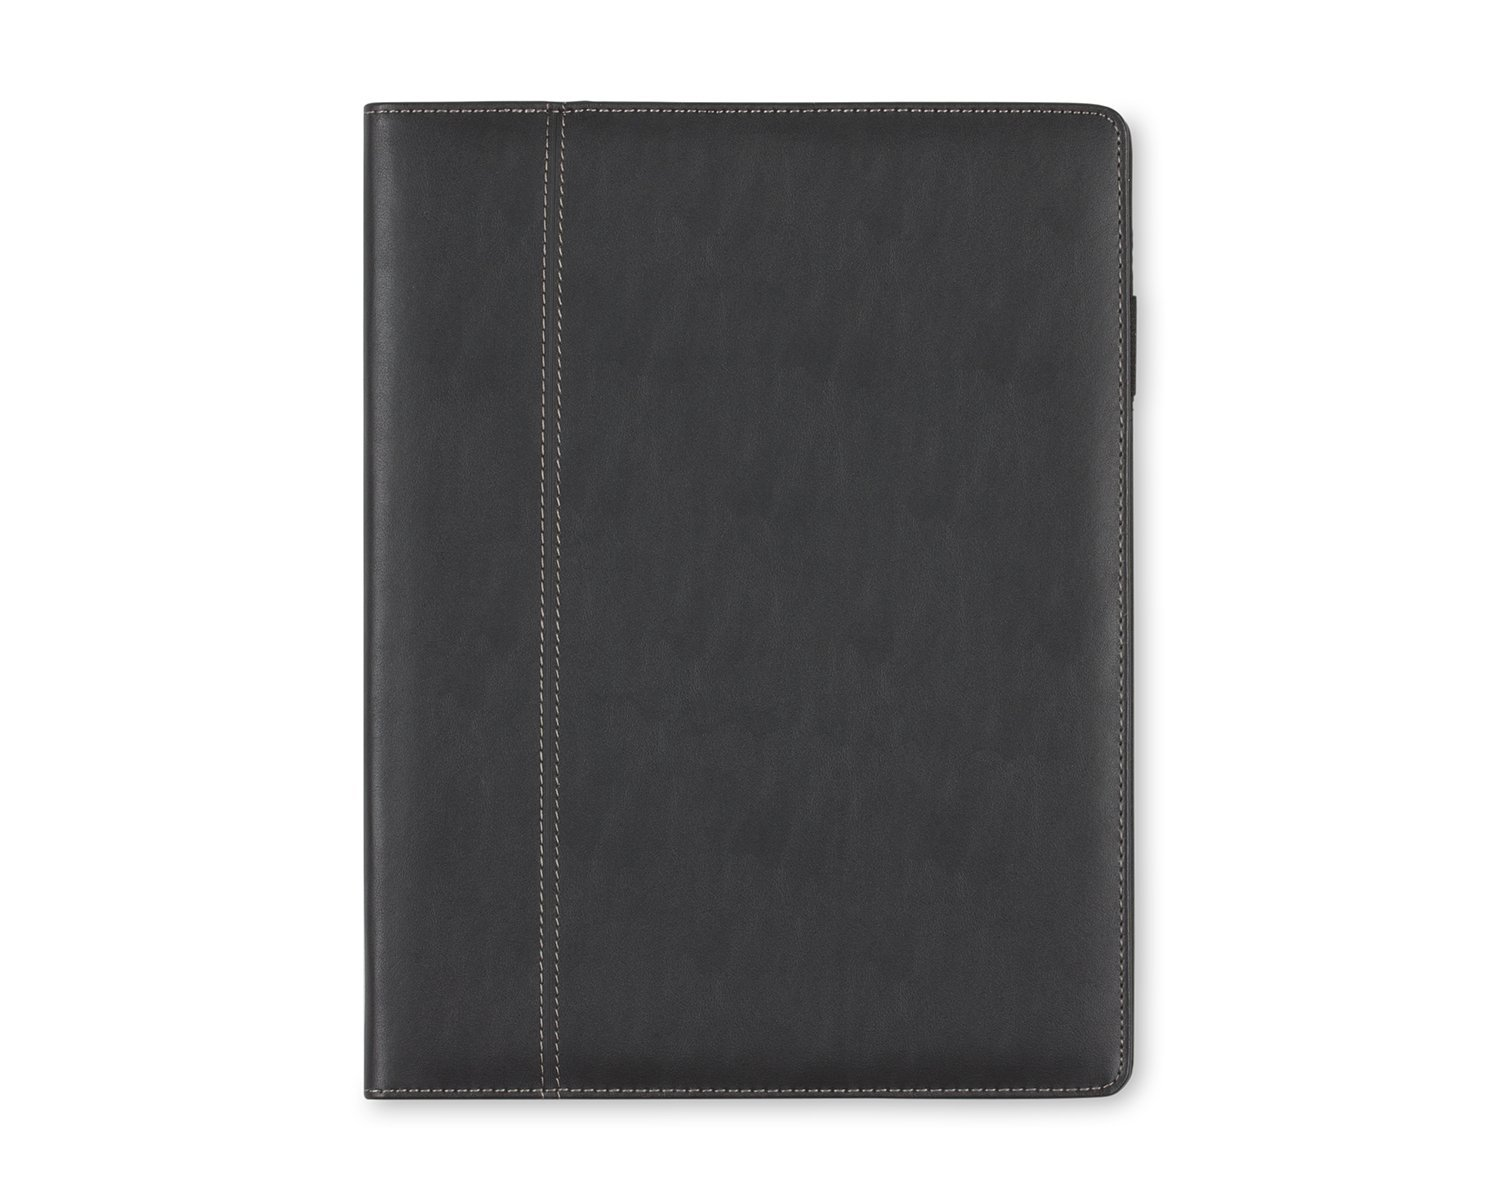 Blue Sky Professional Padfolio, 9.5'' x 12'', Black Leather-Like Textured Cover, Paper Notepad Included